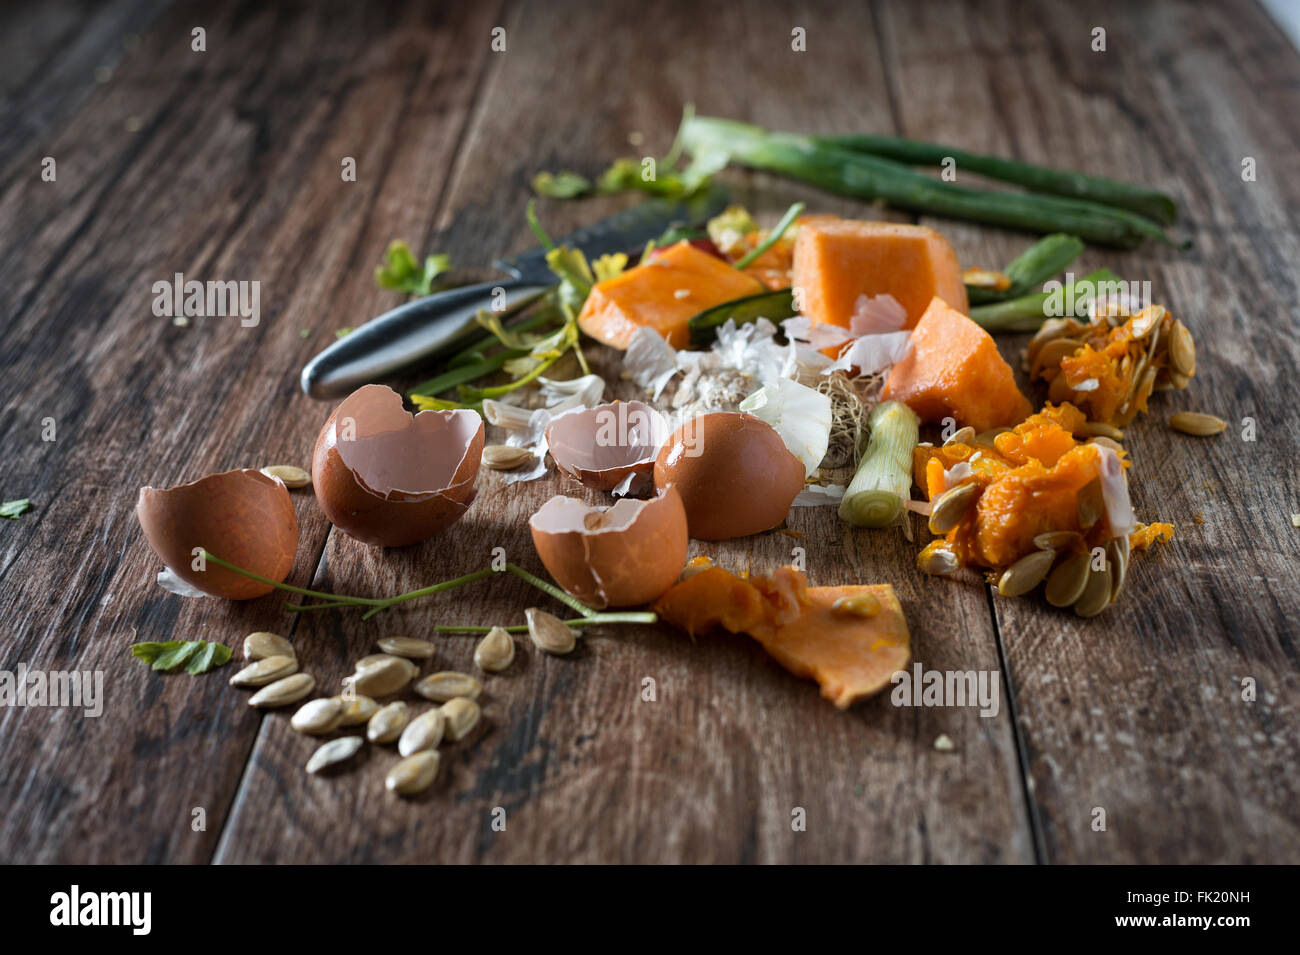 Organic leftovers, waste from vegetable ready for recycling and to compost. Collecting food leftovers for composting. - Stock Image